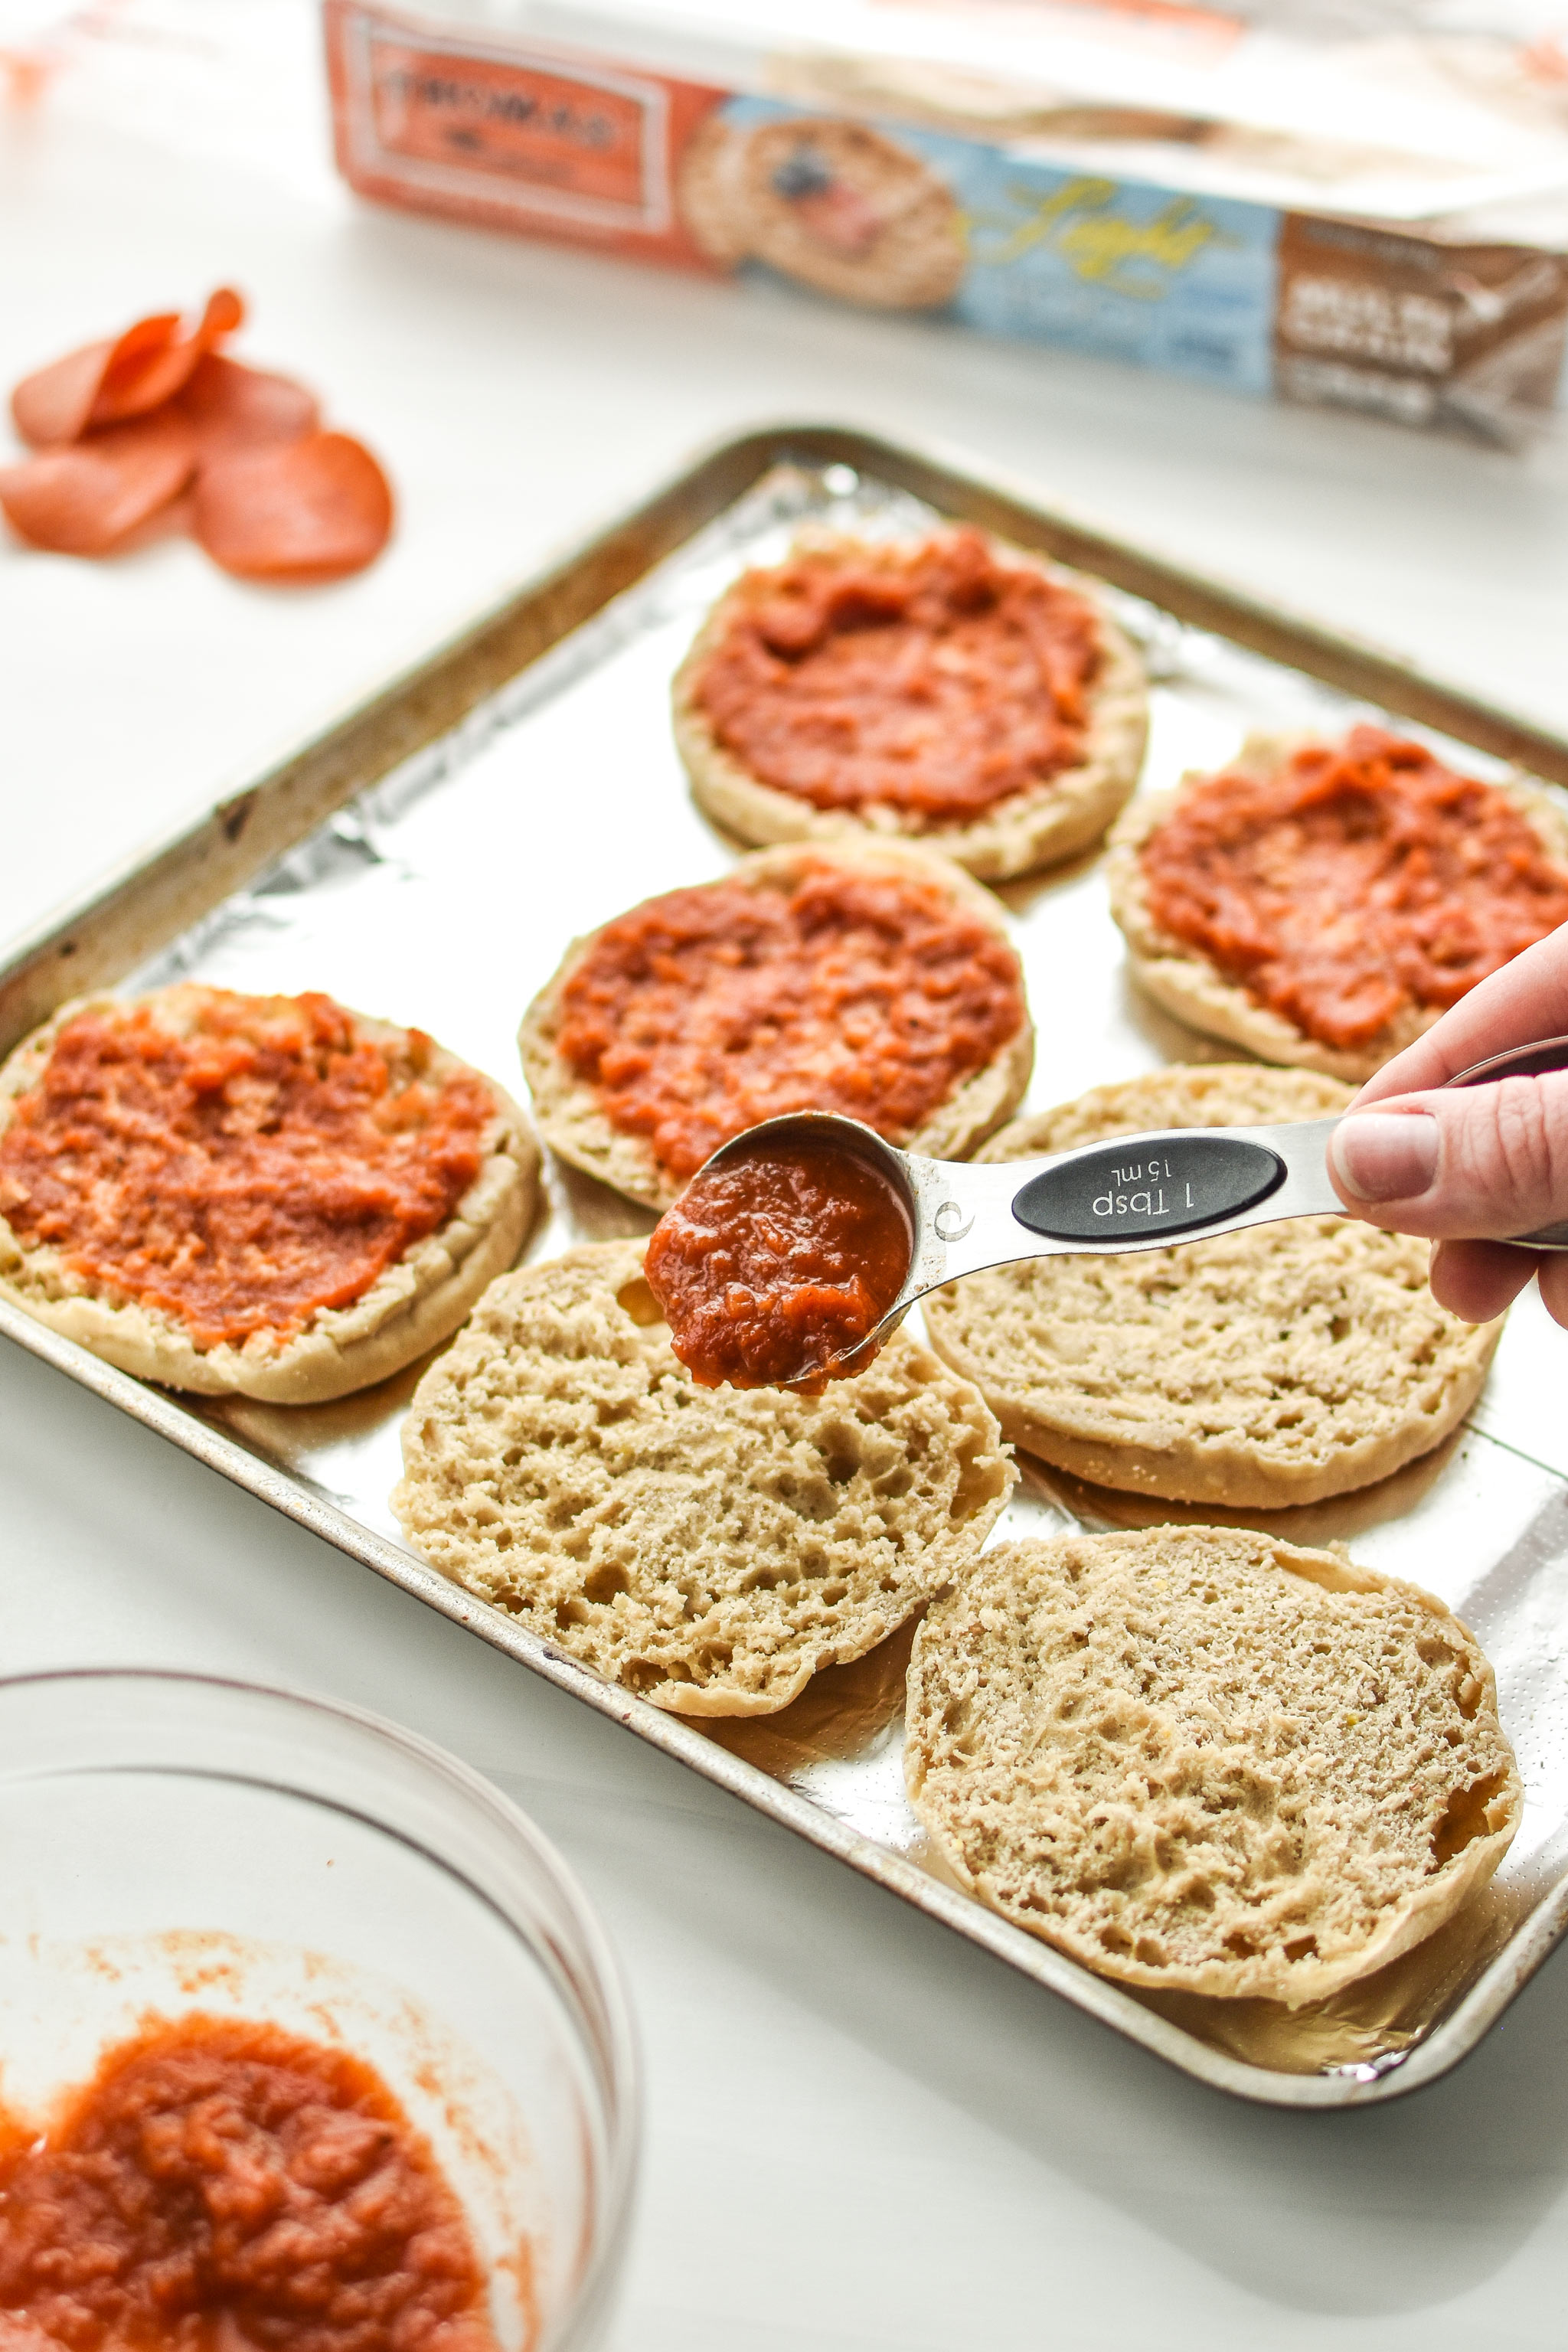 Adding sauce to the english muffins for the english muffin mini pizza meal prep